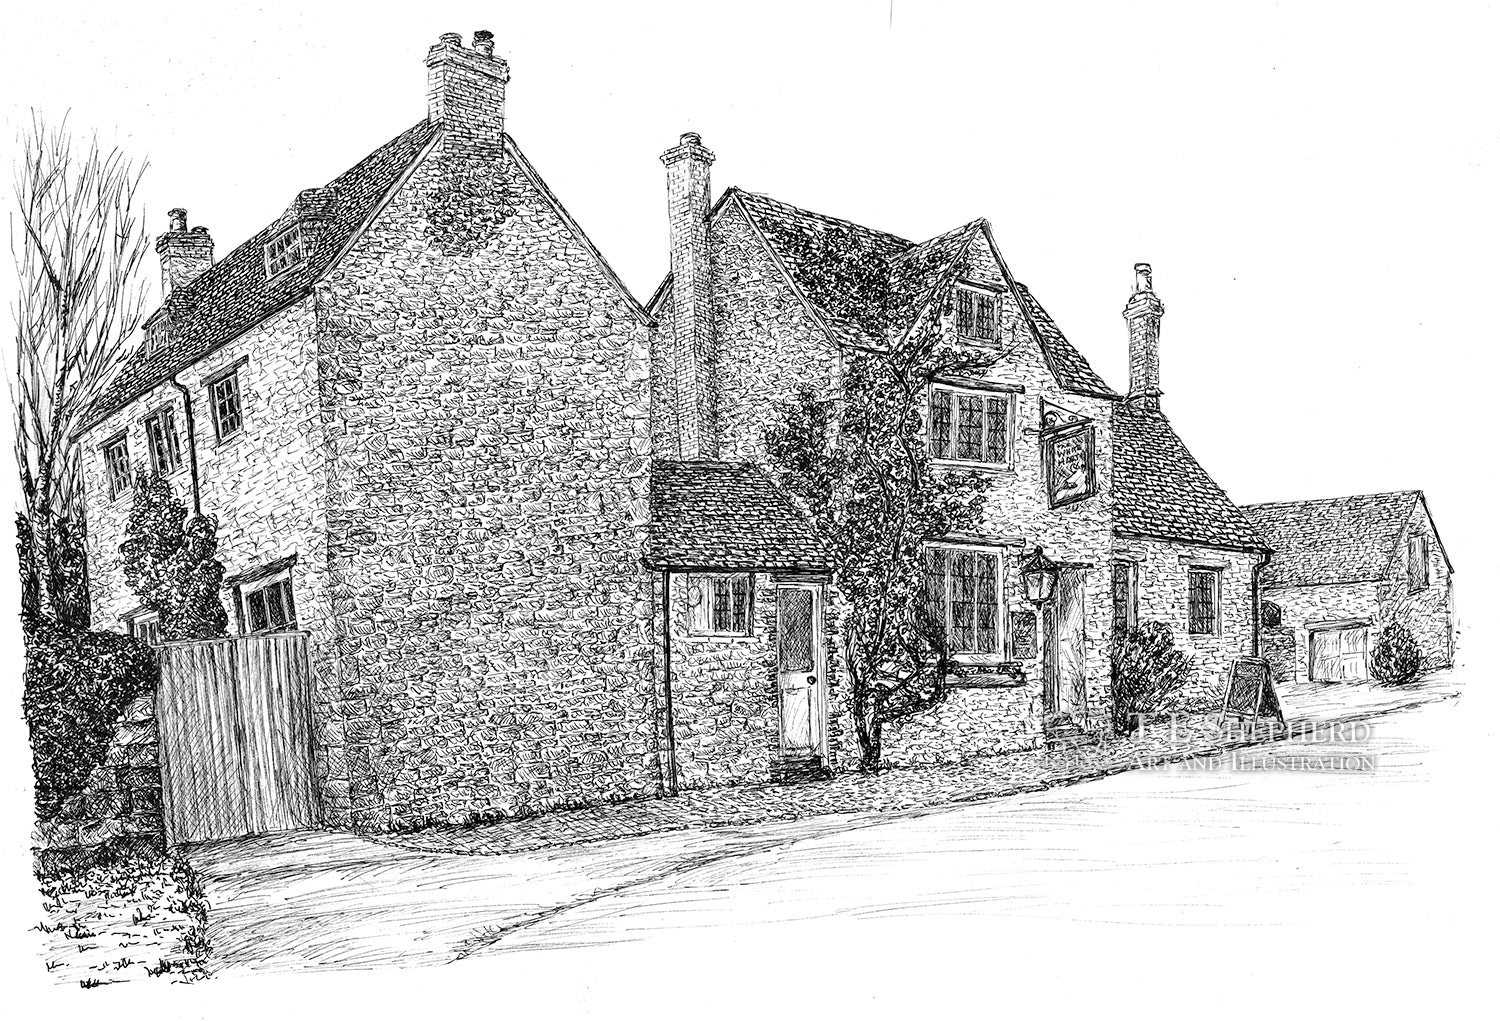 The White Hart, Wytham, Oxfordshire